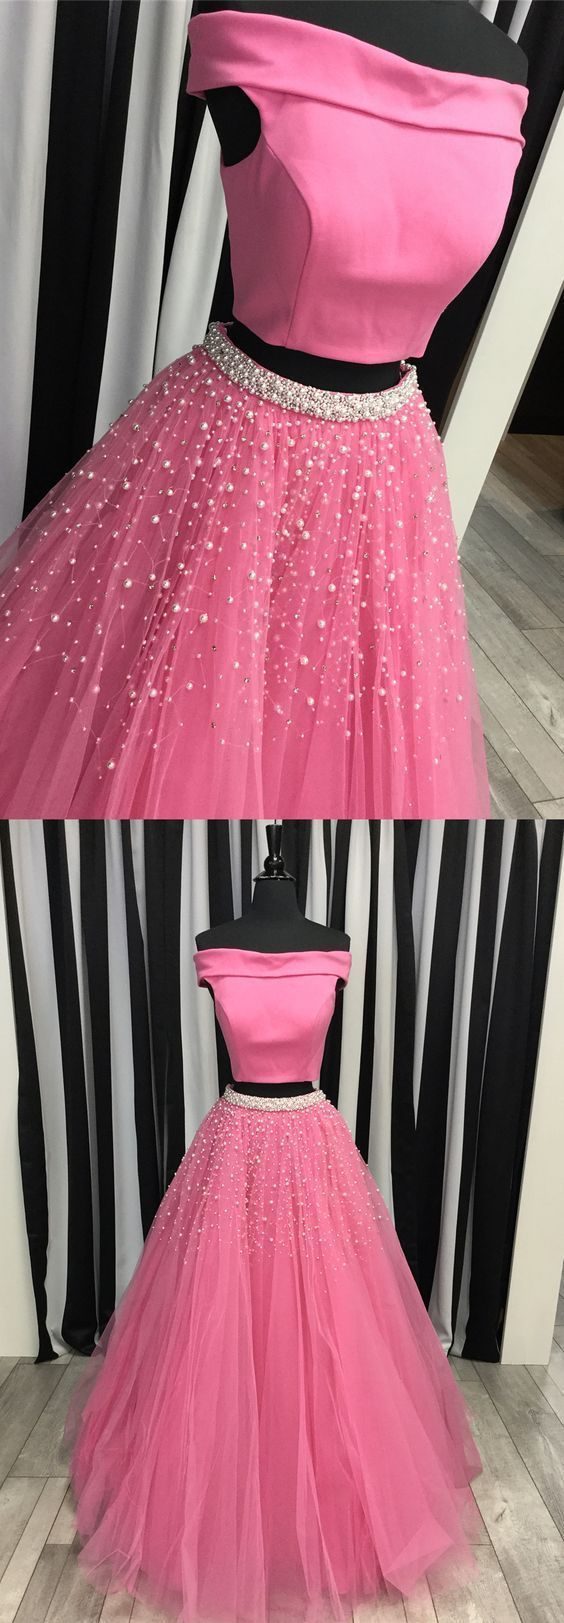 two piece ,off the shoulder ,watermelon long prom dress, 2018 prom dress with white pearls,New Fashion,Custom Made ,Sleeveless Evening Dress,New Fashion,Custom Made